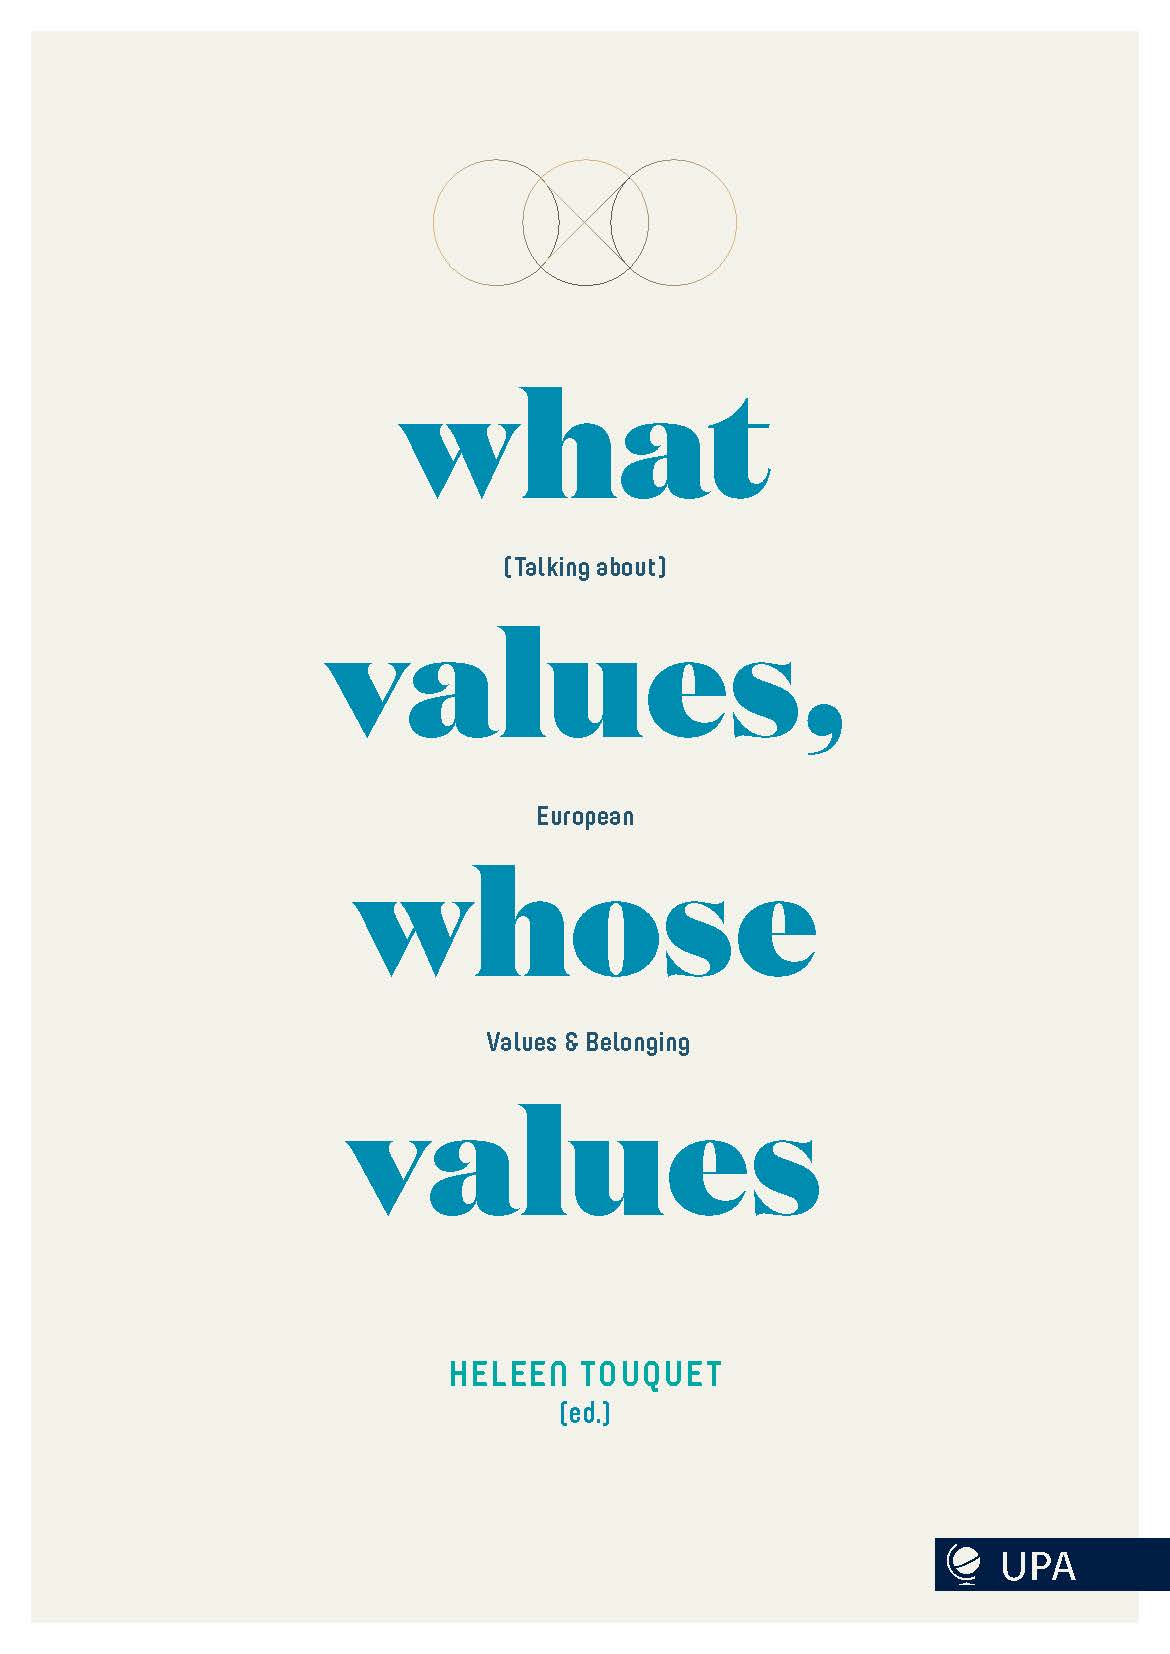 WHAT VALUES, WHOSE VALUES